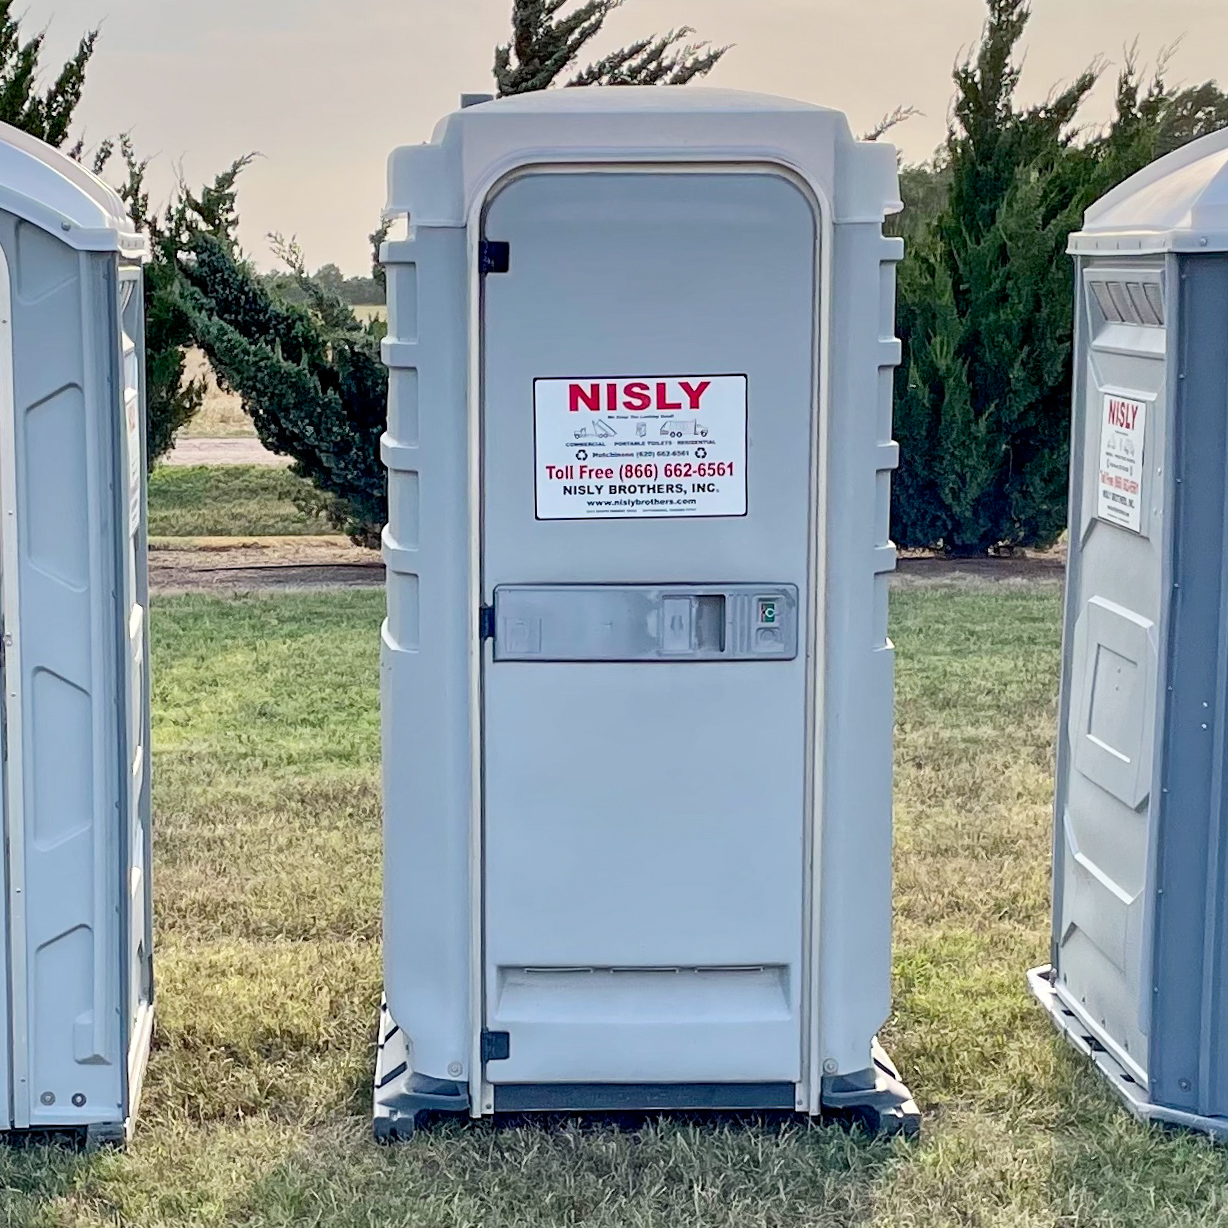 clean portable elite porta potty for rent near mcpherson kansas ideal for construction workers